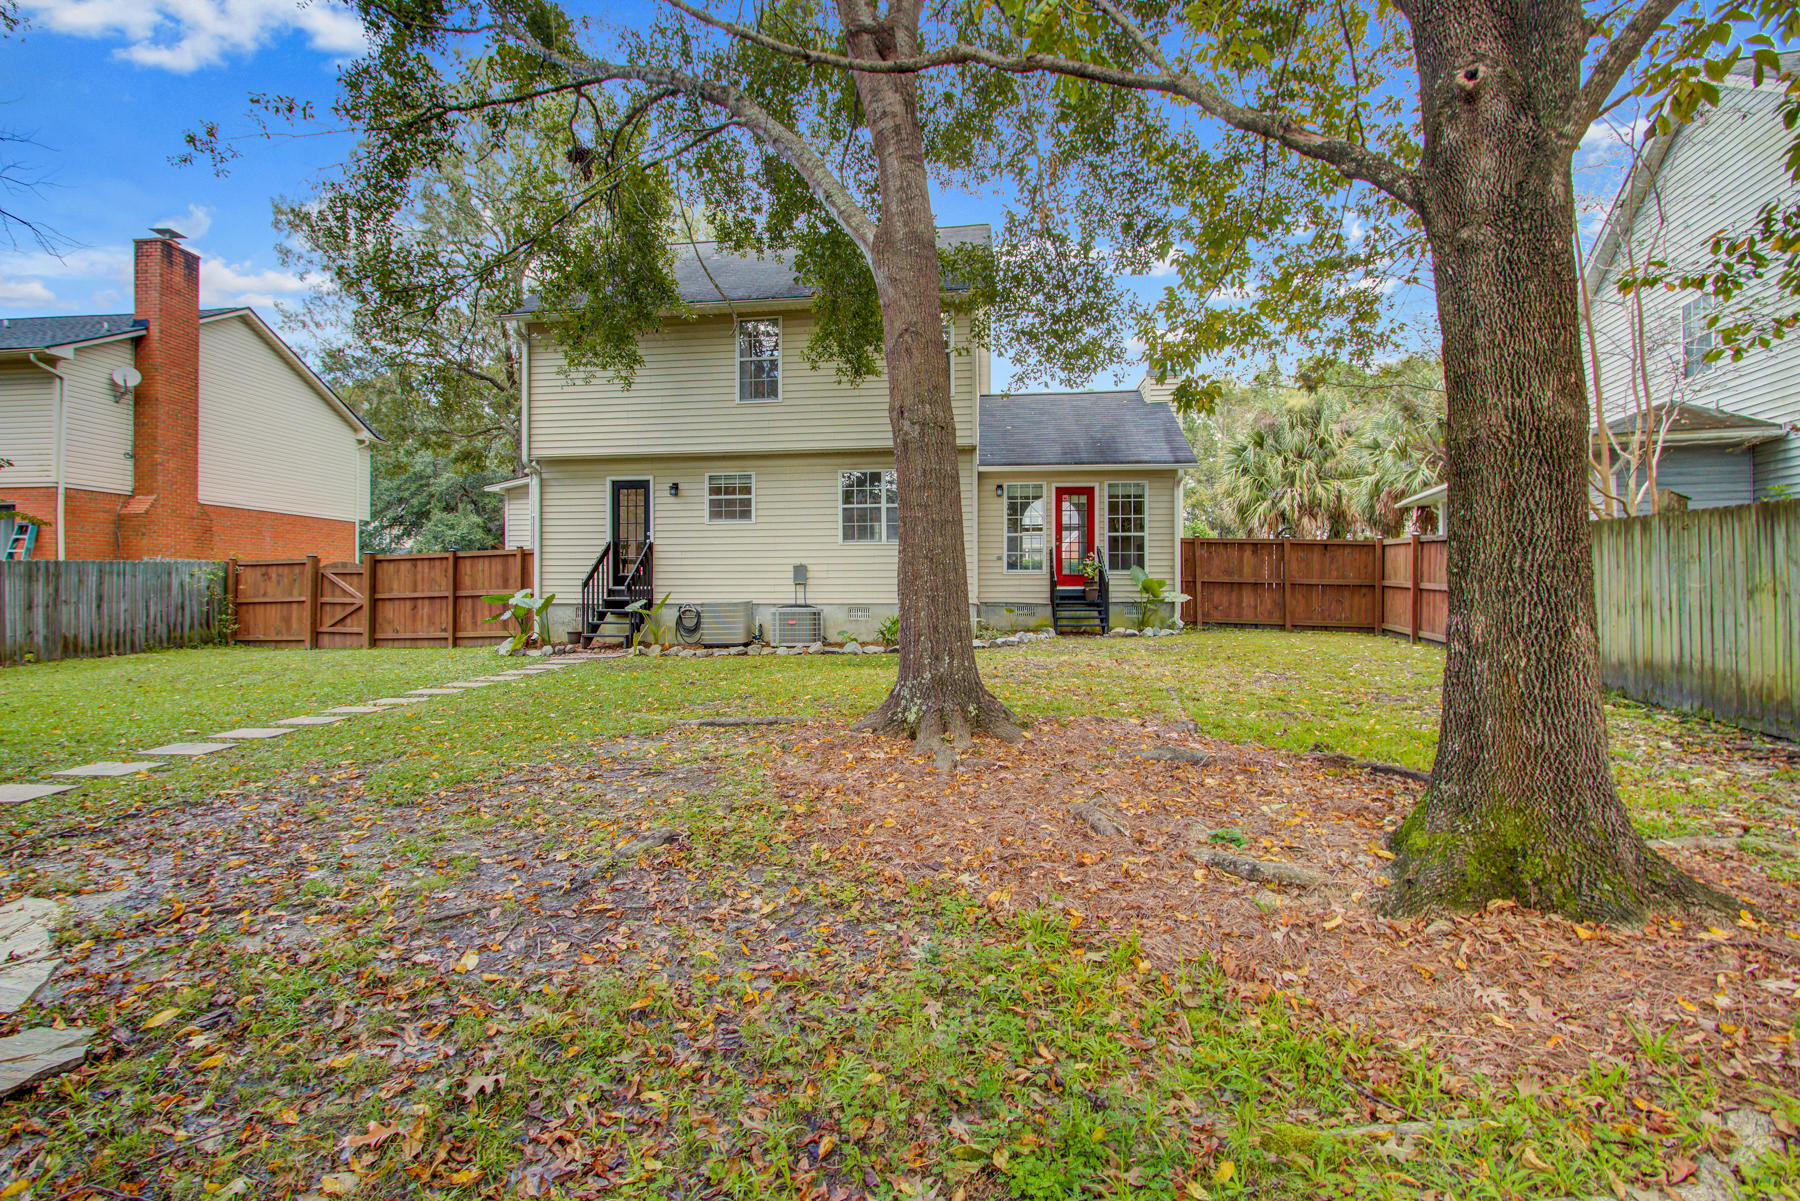 Crowfield Plantation Homes For Sale - 151 Winding Rock, Goose Creek, SC - 1